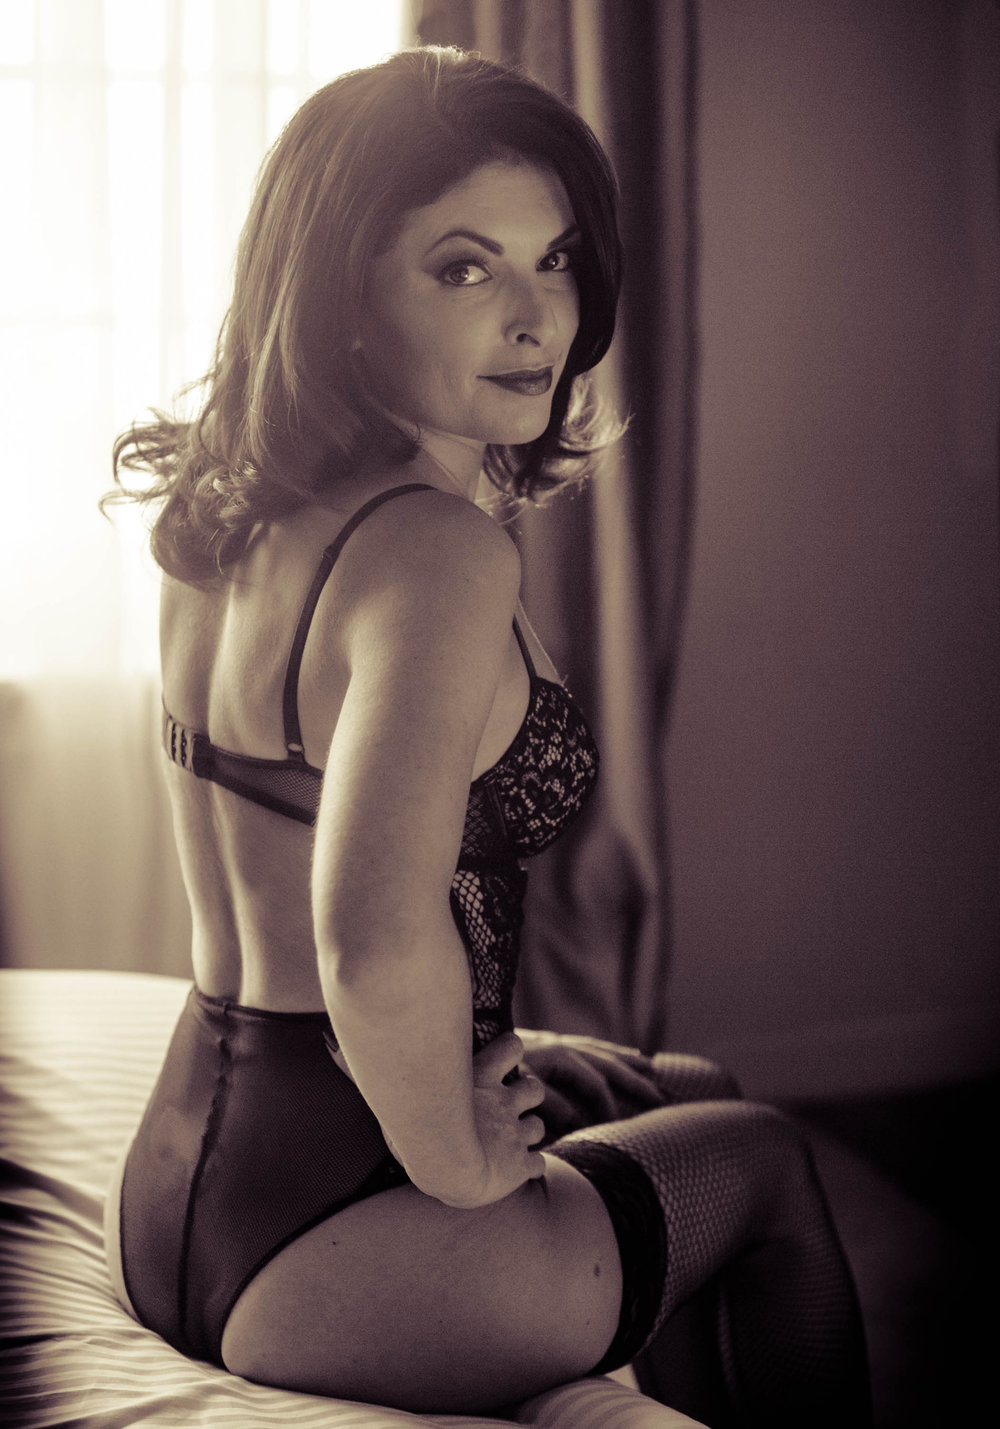 Atlantic-City-NJ-Boudoir-Photographer-Jules